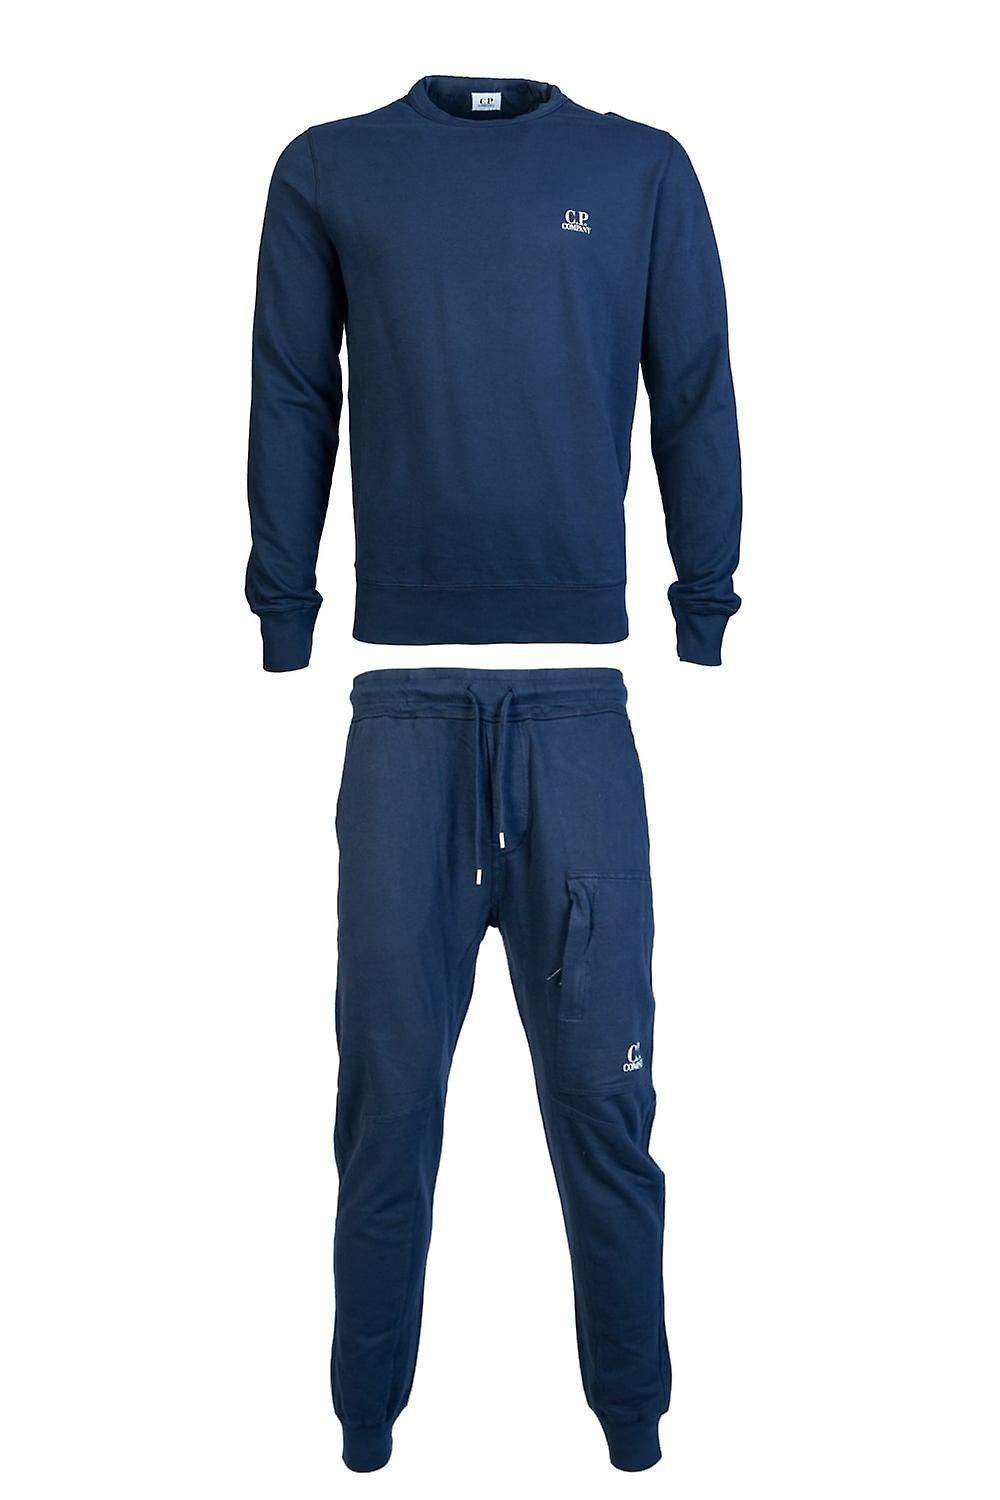 CP Company Comfort Tracksuit MSS057A 002246G